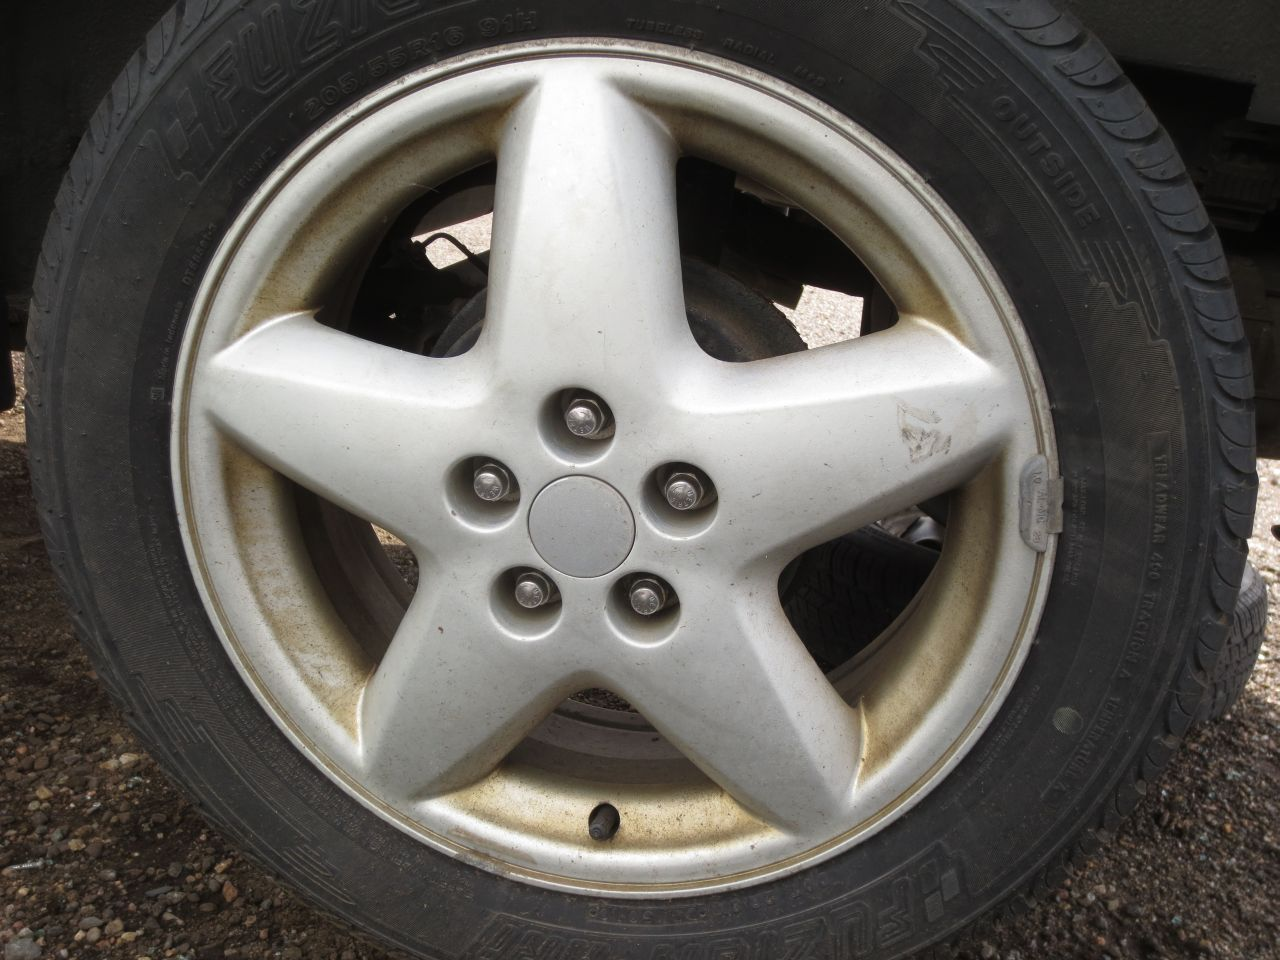 Cavalier 98 chevy cavalier tire size : Junkyard Find: 1998 Chevrolet Cavalier Z24 - The Truth About Cars